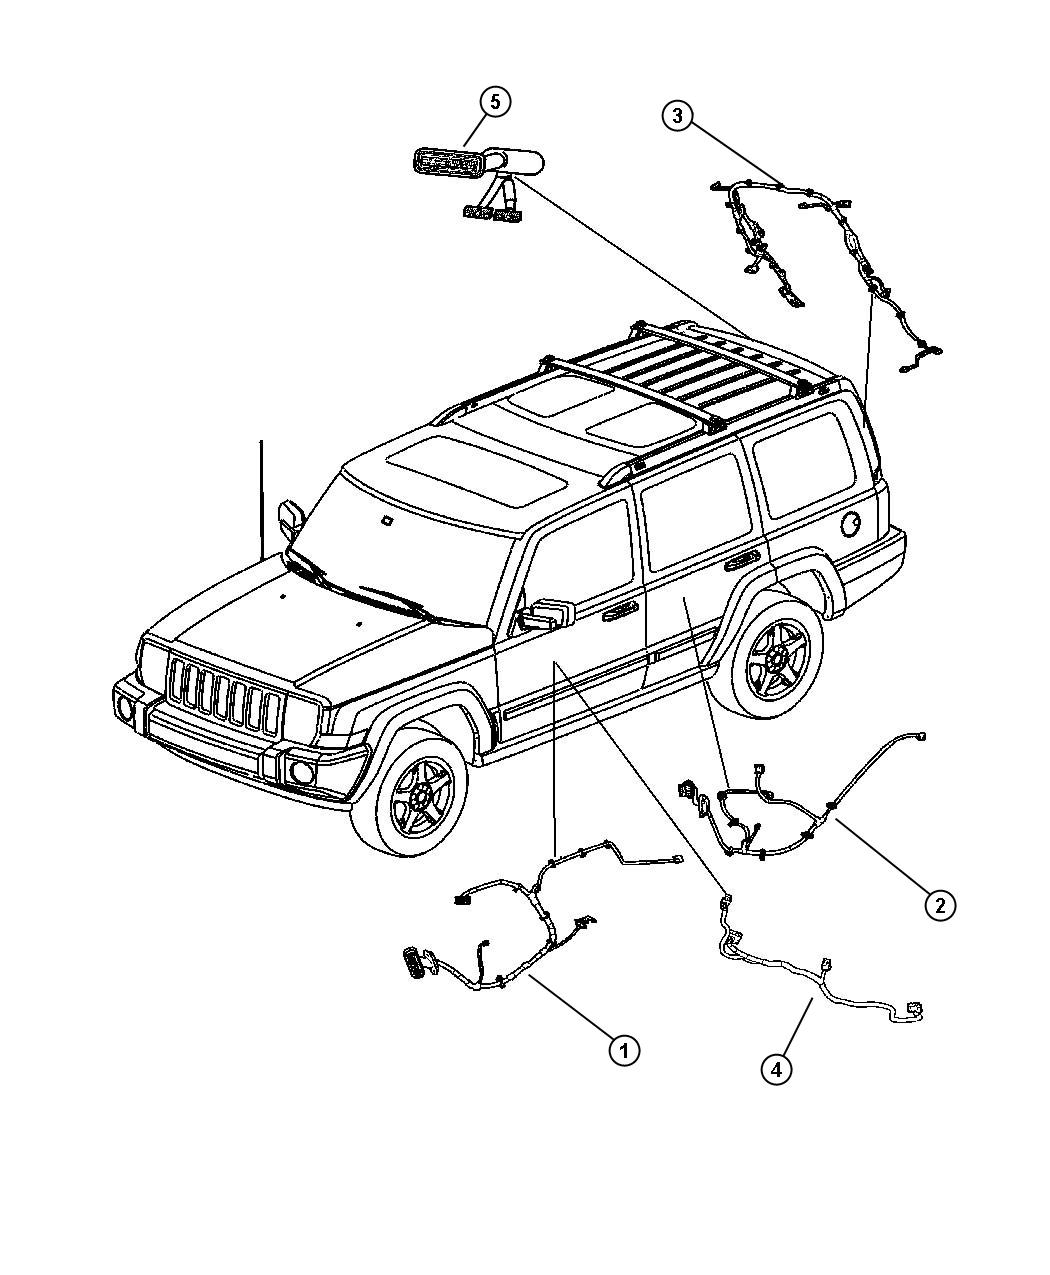 Jeep Backup Camera Wiring Diagram Auto Electrical 1998 Grand Cherokee Steering Related With